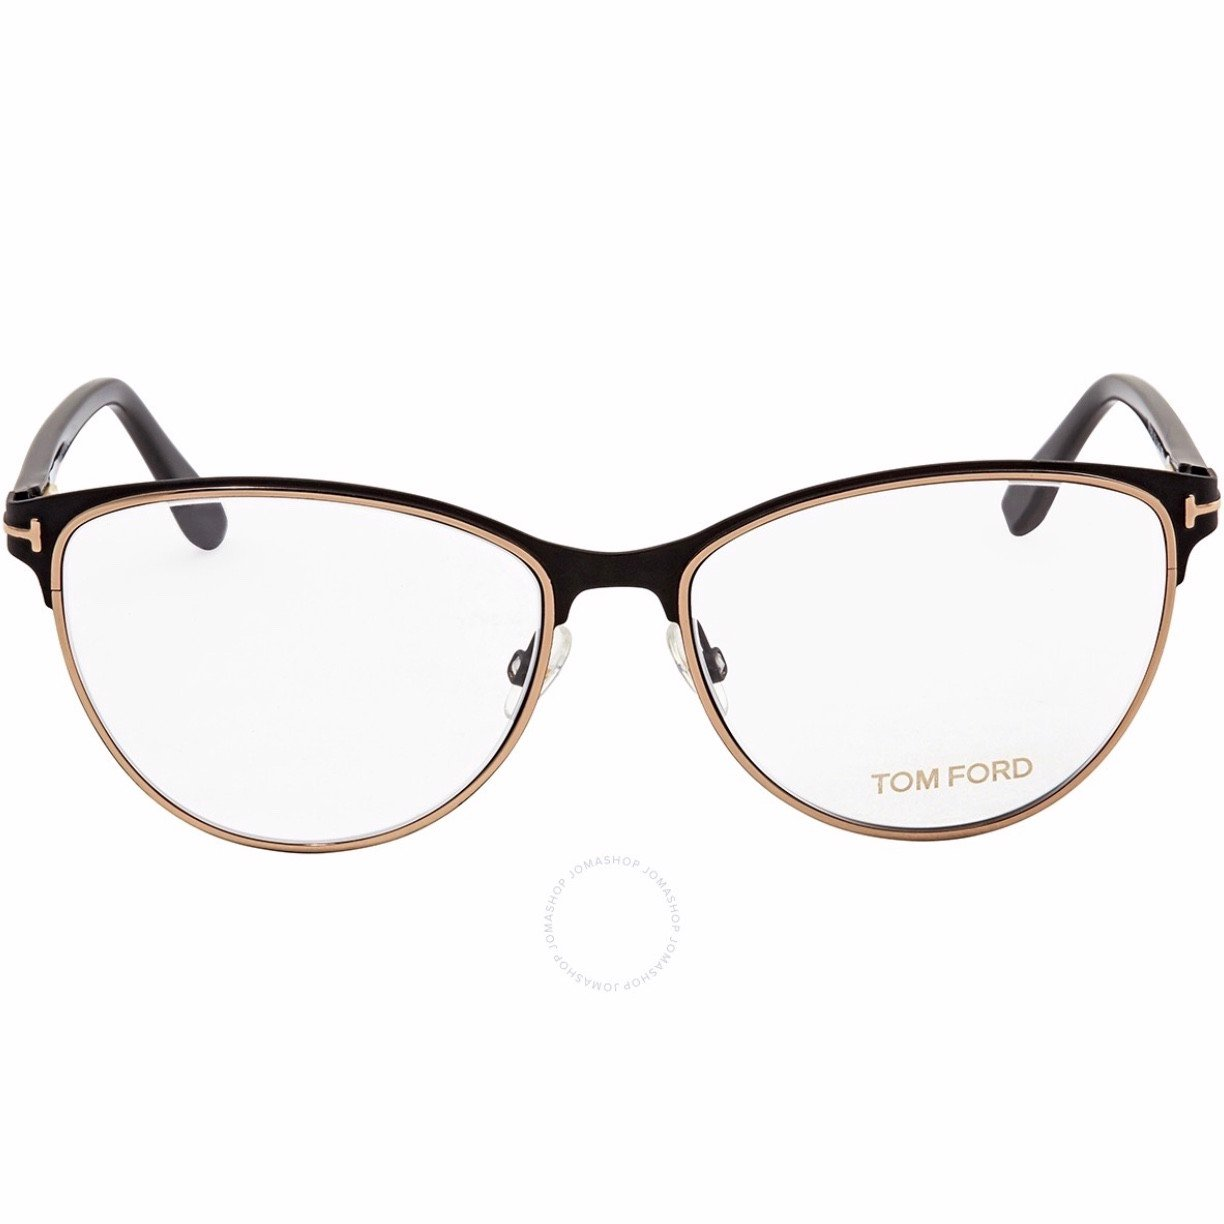 Tom Ford Black Cat Eye Eyeglass Frames 005